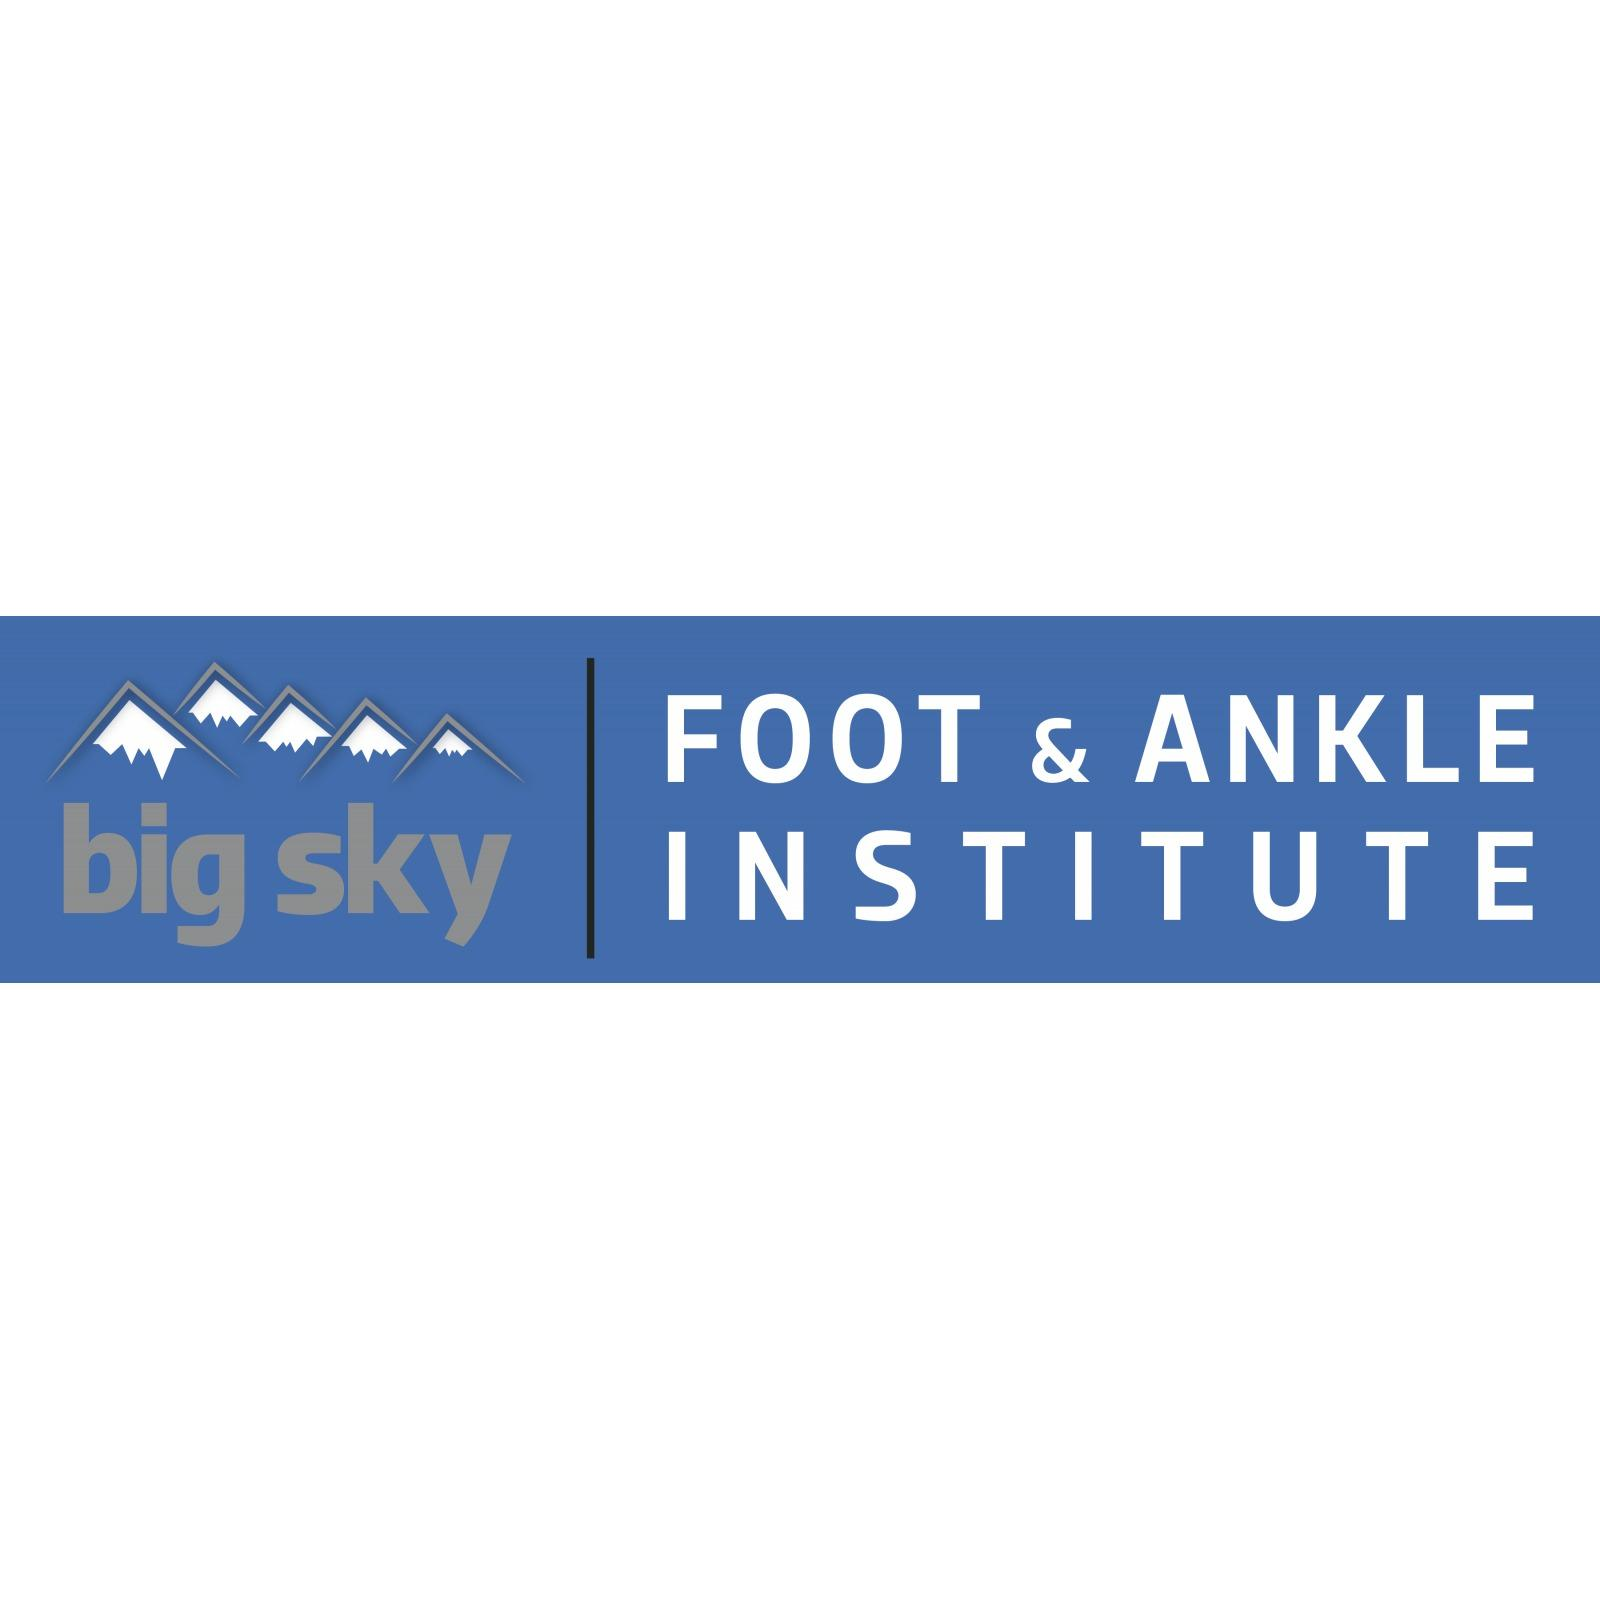 Big Sky Foot & Ankle Institute